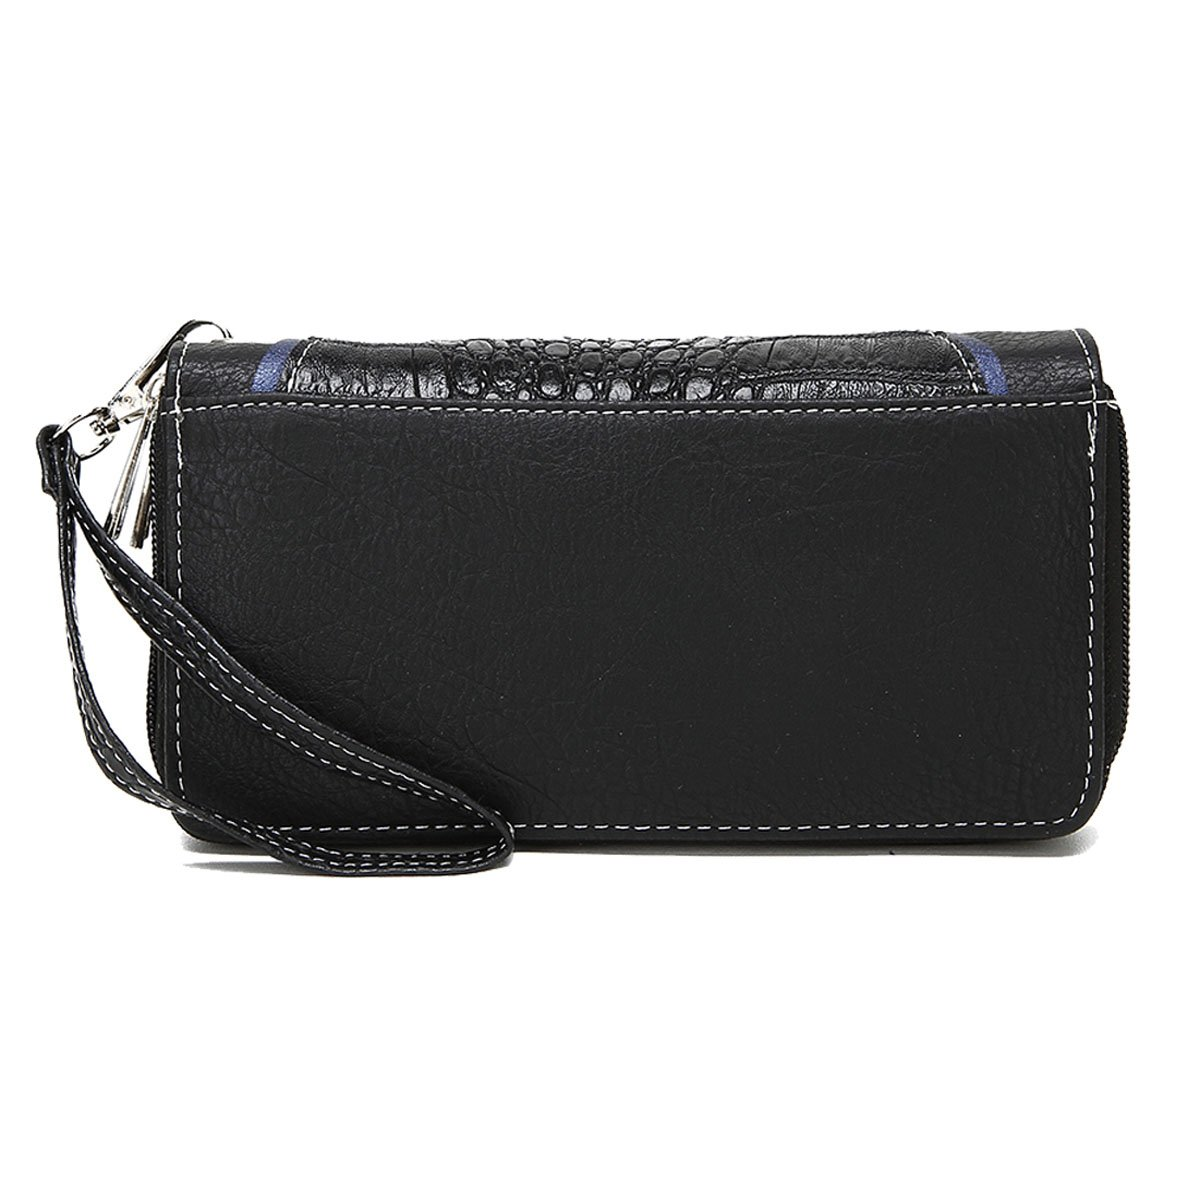 Conchos Studded Crocodile Laser Cut Cowgirl Western Style Country Purse Wrist Strap Women Wristlet Wallet (Black) by Cowgirl Trendy (Image #3)